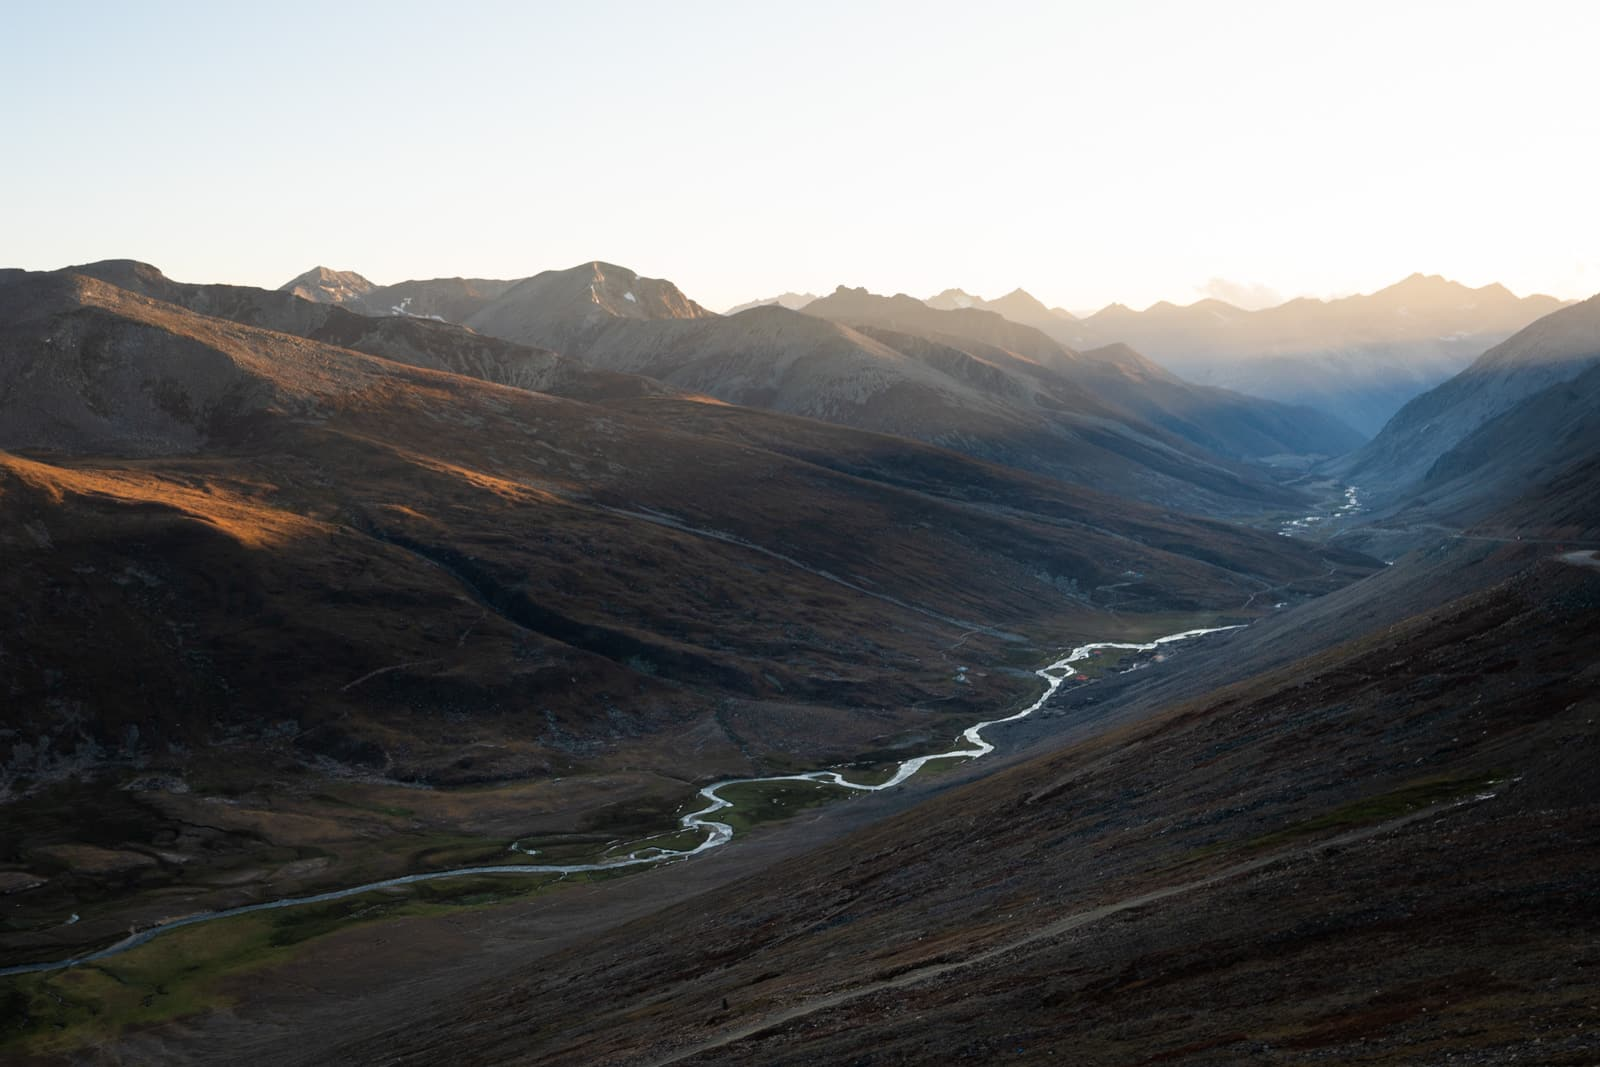 Sunset over Babusar Pass in Pakistan